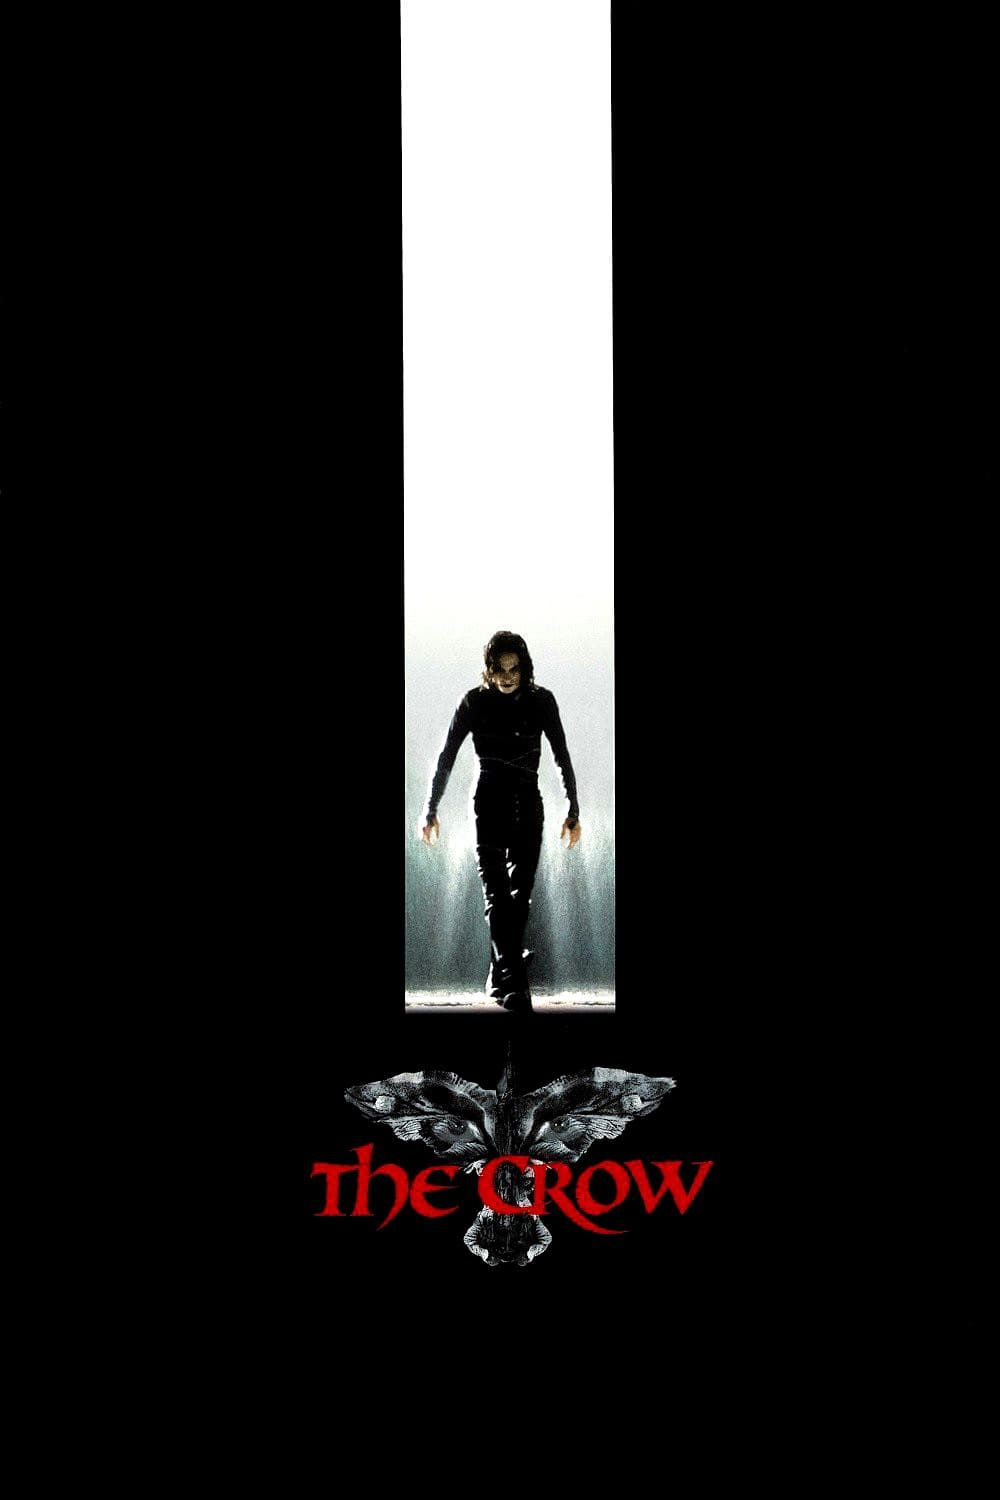 The Crow 2 Stream